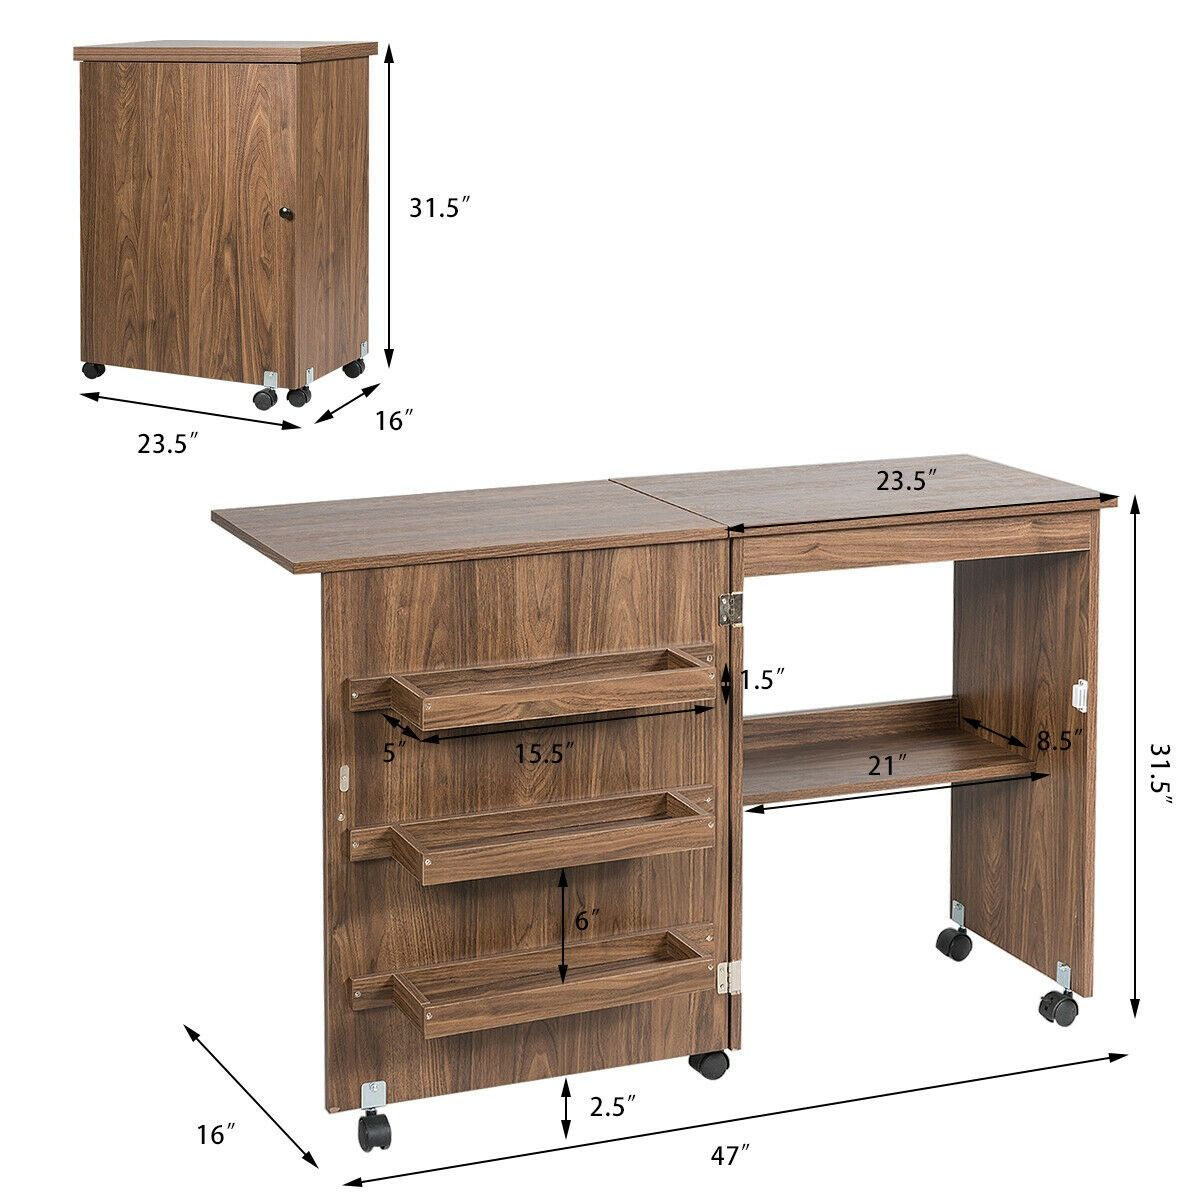 34+ Large craft table with storage information